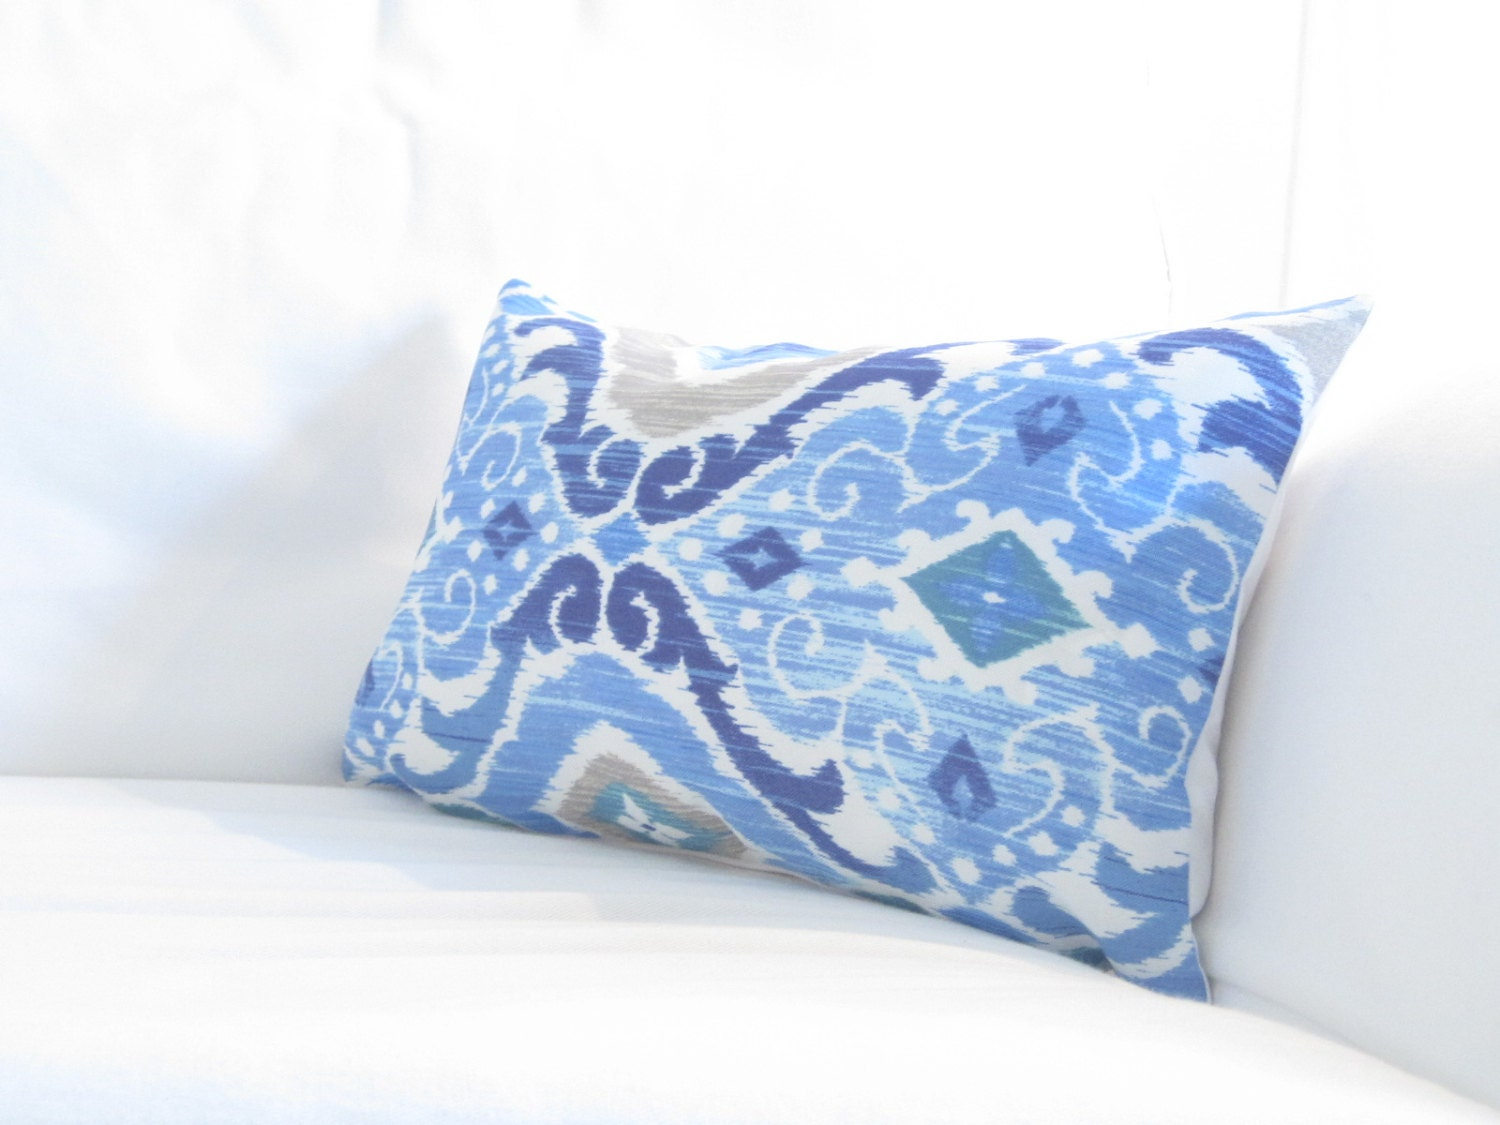 Blue Lumbars Chair Pillows Blue Damask Lumbar by  : ilfullxfull673639462doi7 from www.etsy.com size 1500 x 1125 jpeg 201kB